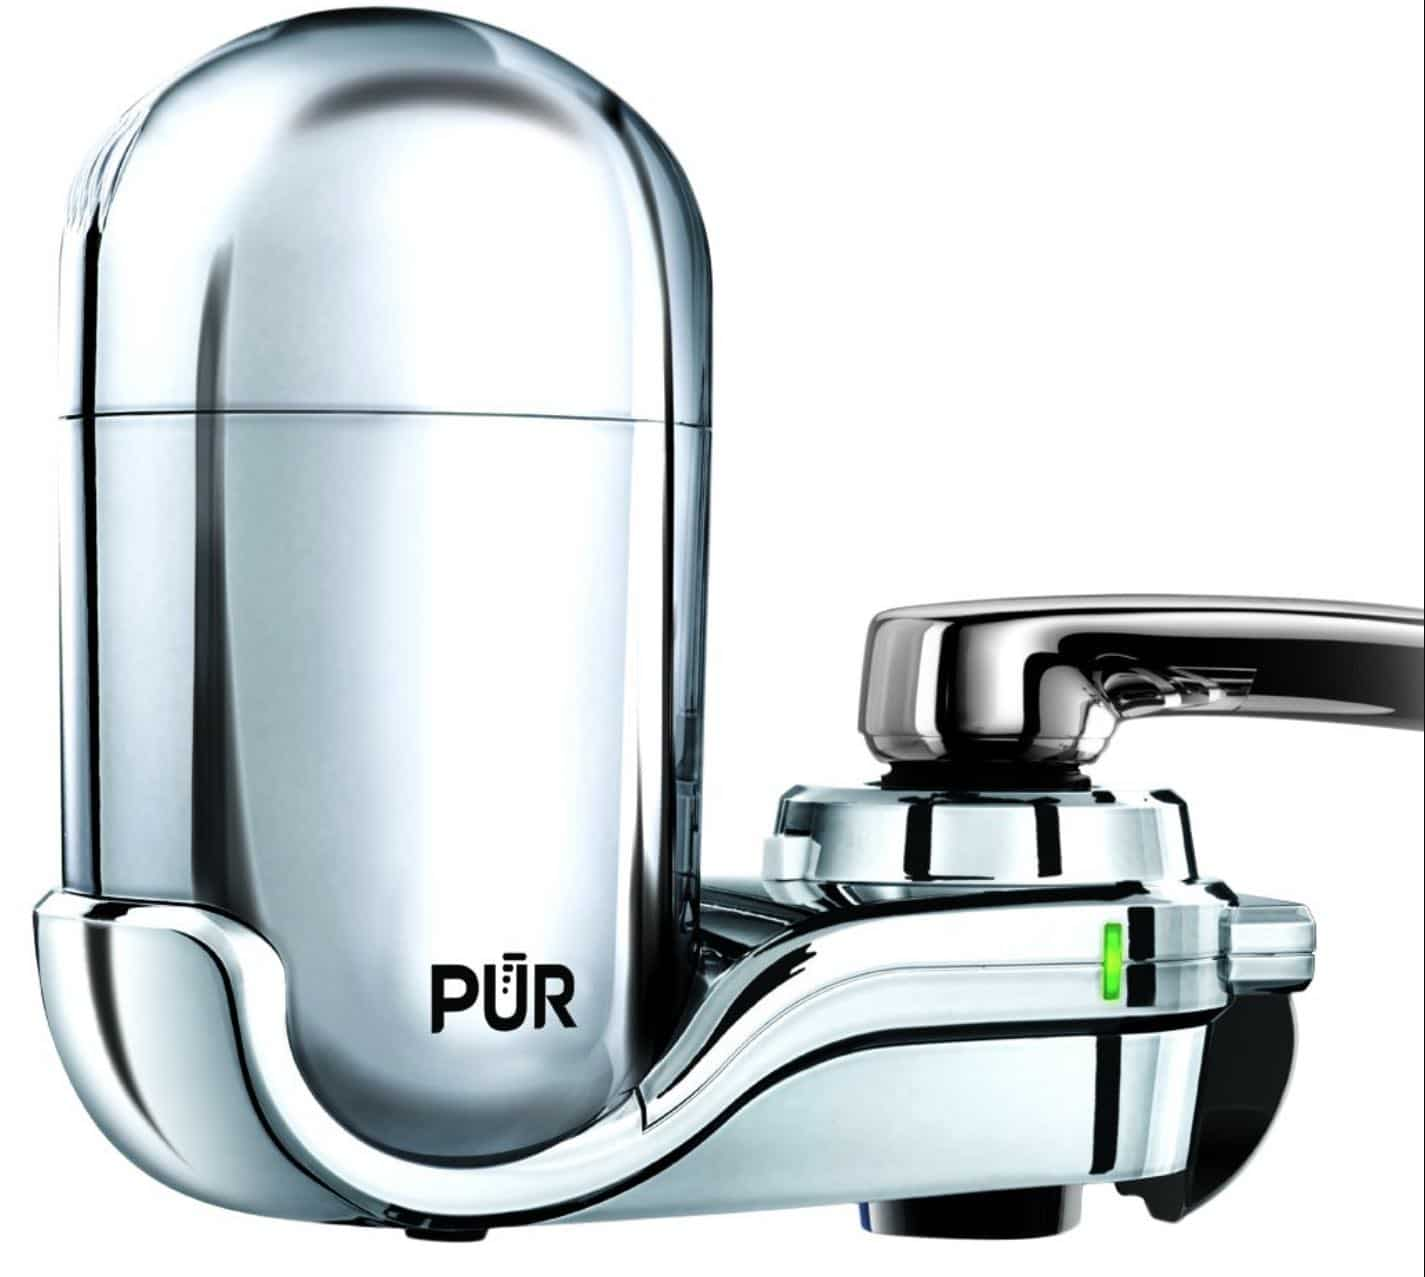 Learn More About Things You Need to Consider Before Buying Faucet Water Filter